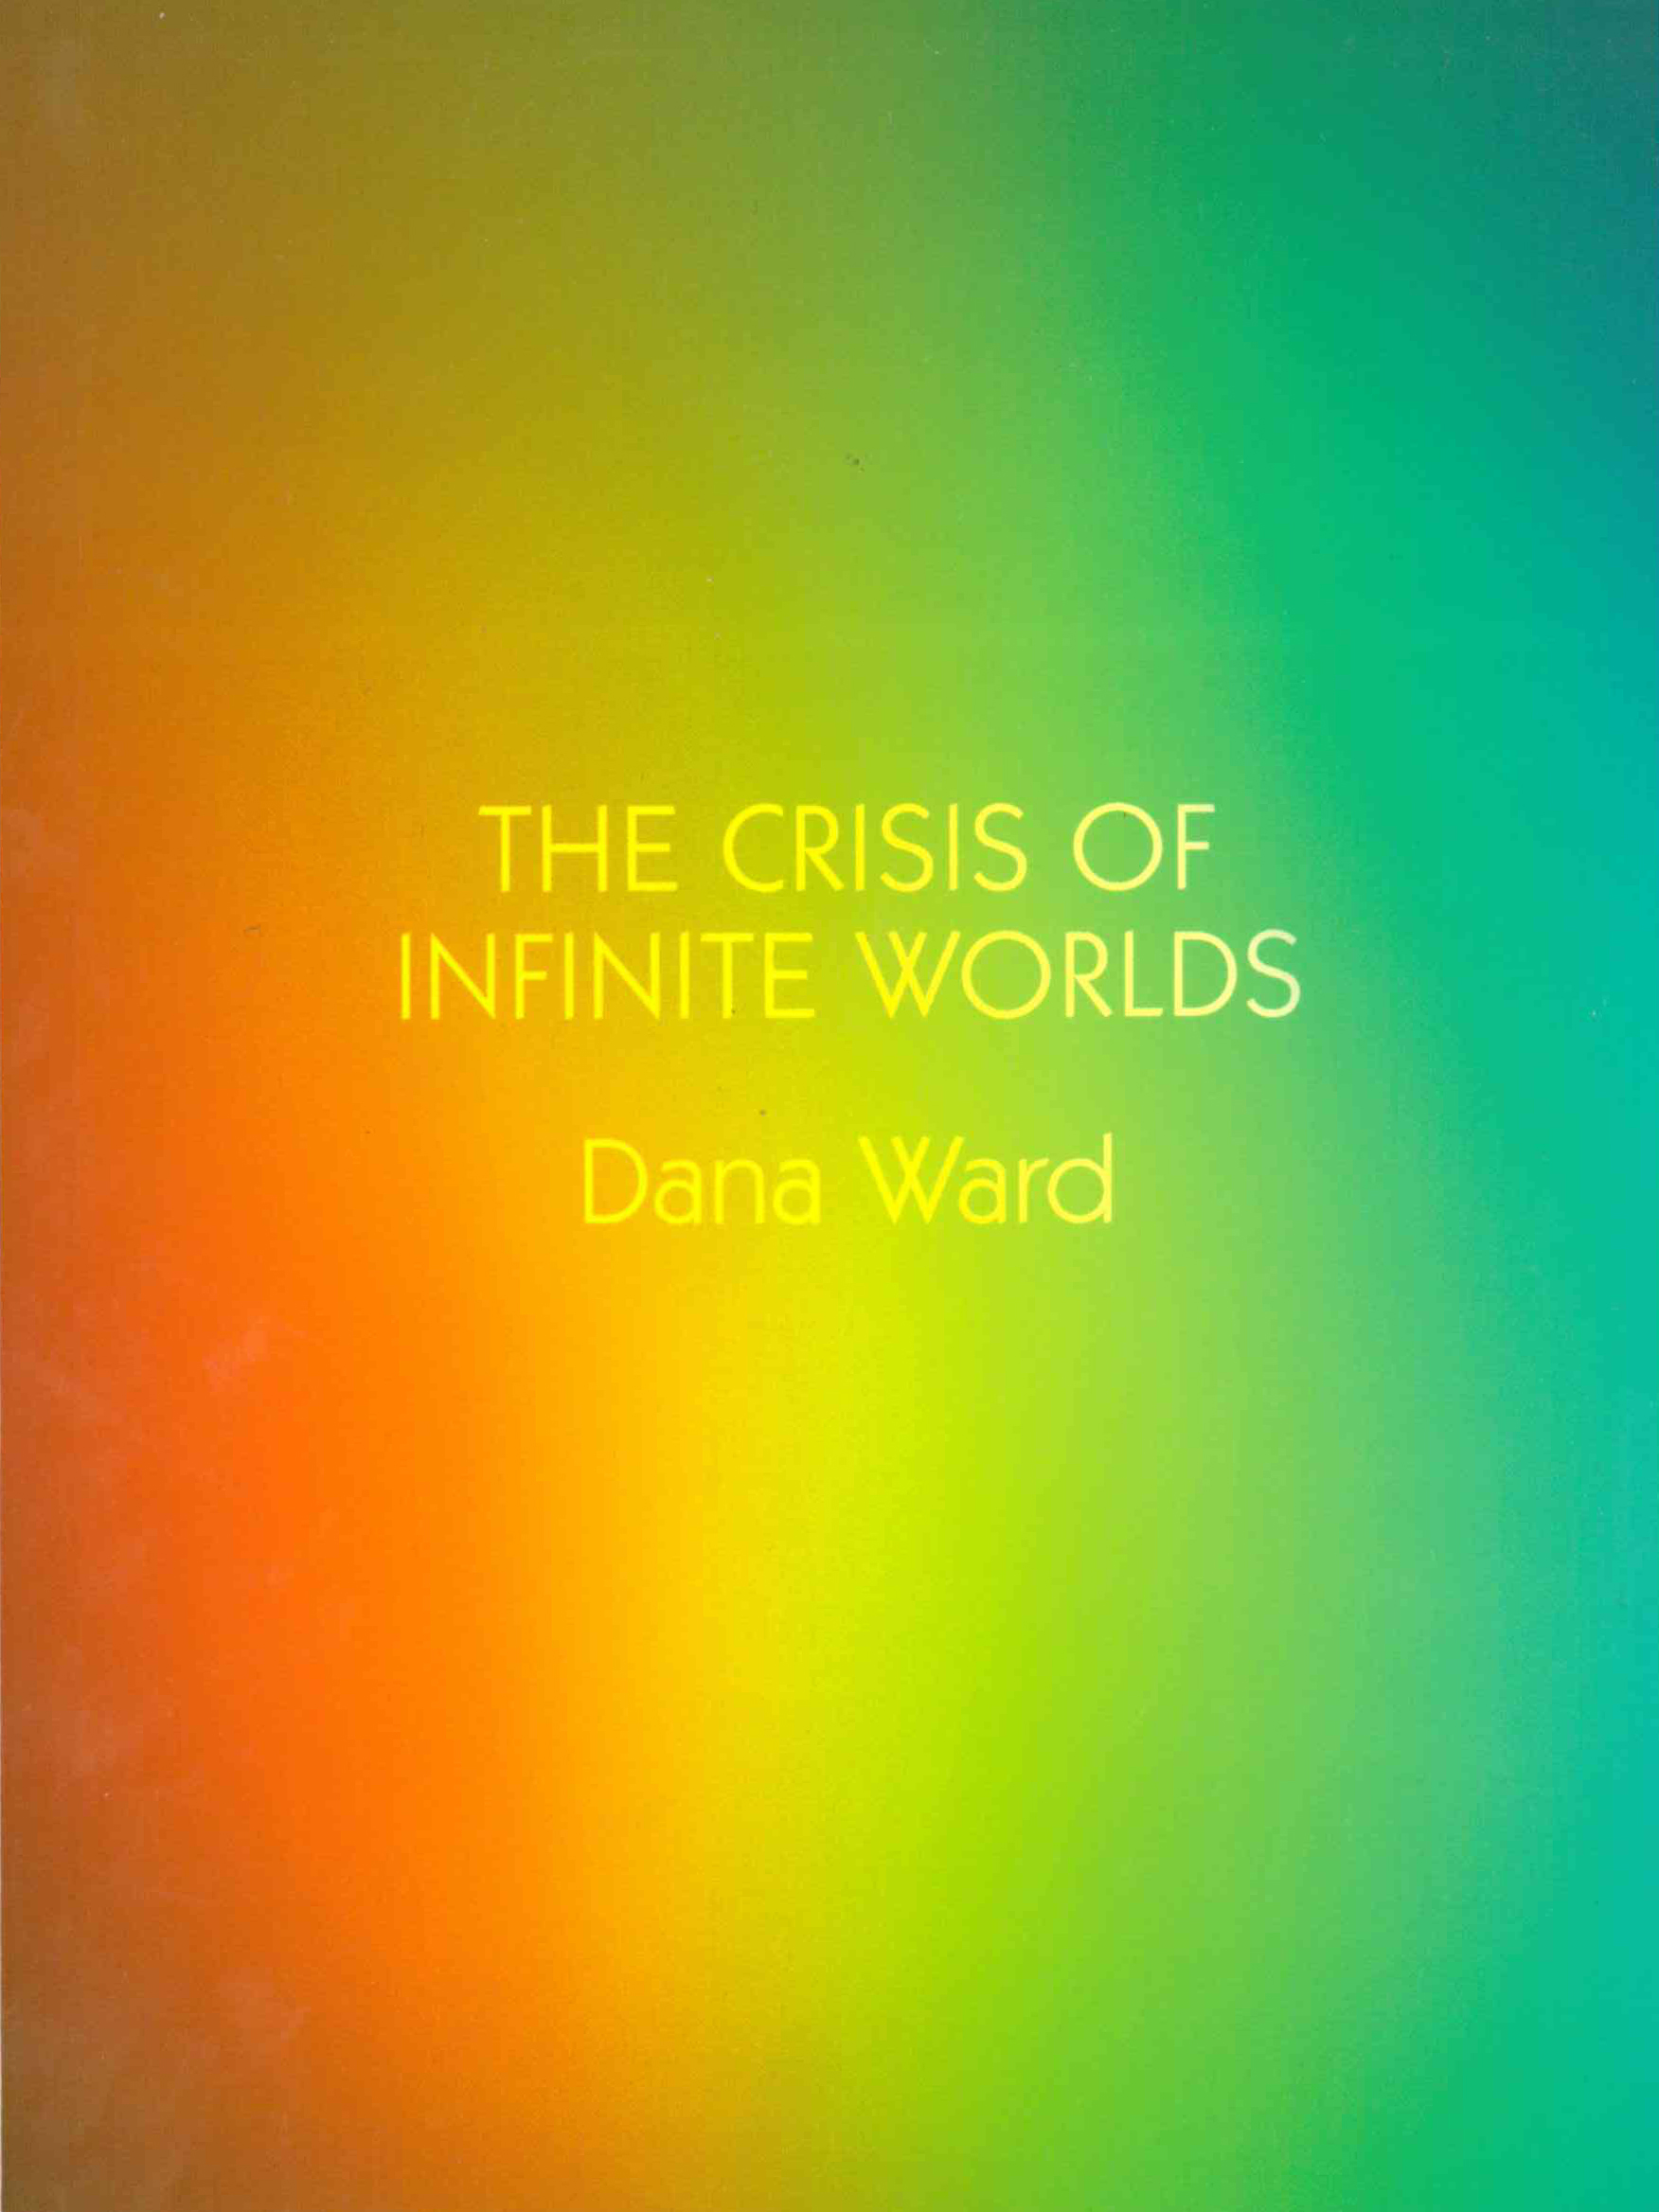 The Crisis of Infinite Worlds